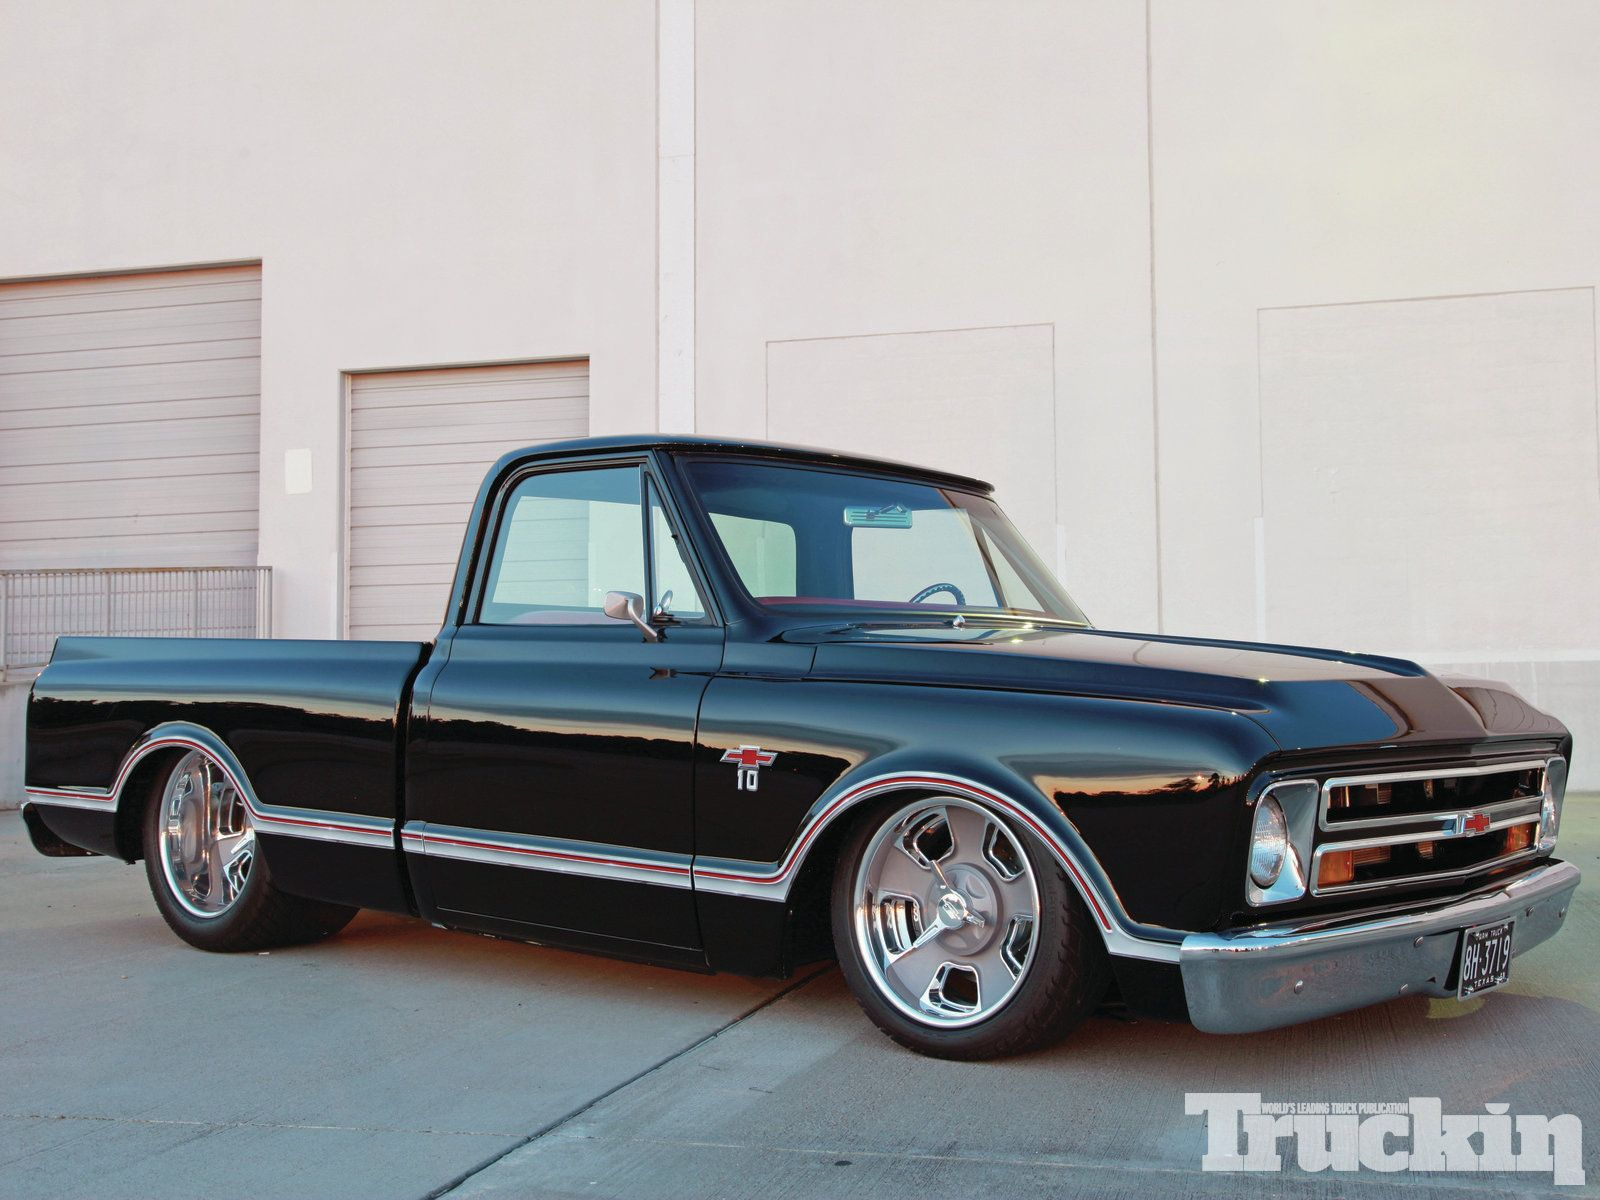 1968 chevy c10 last of a dying breed love and dedication went into